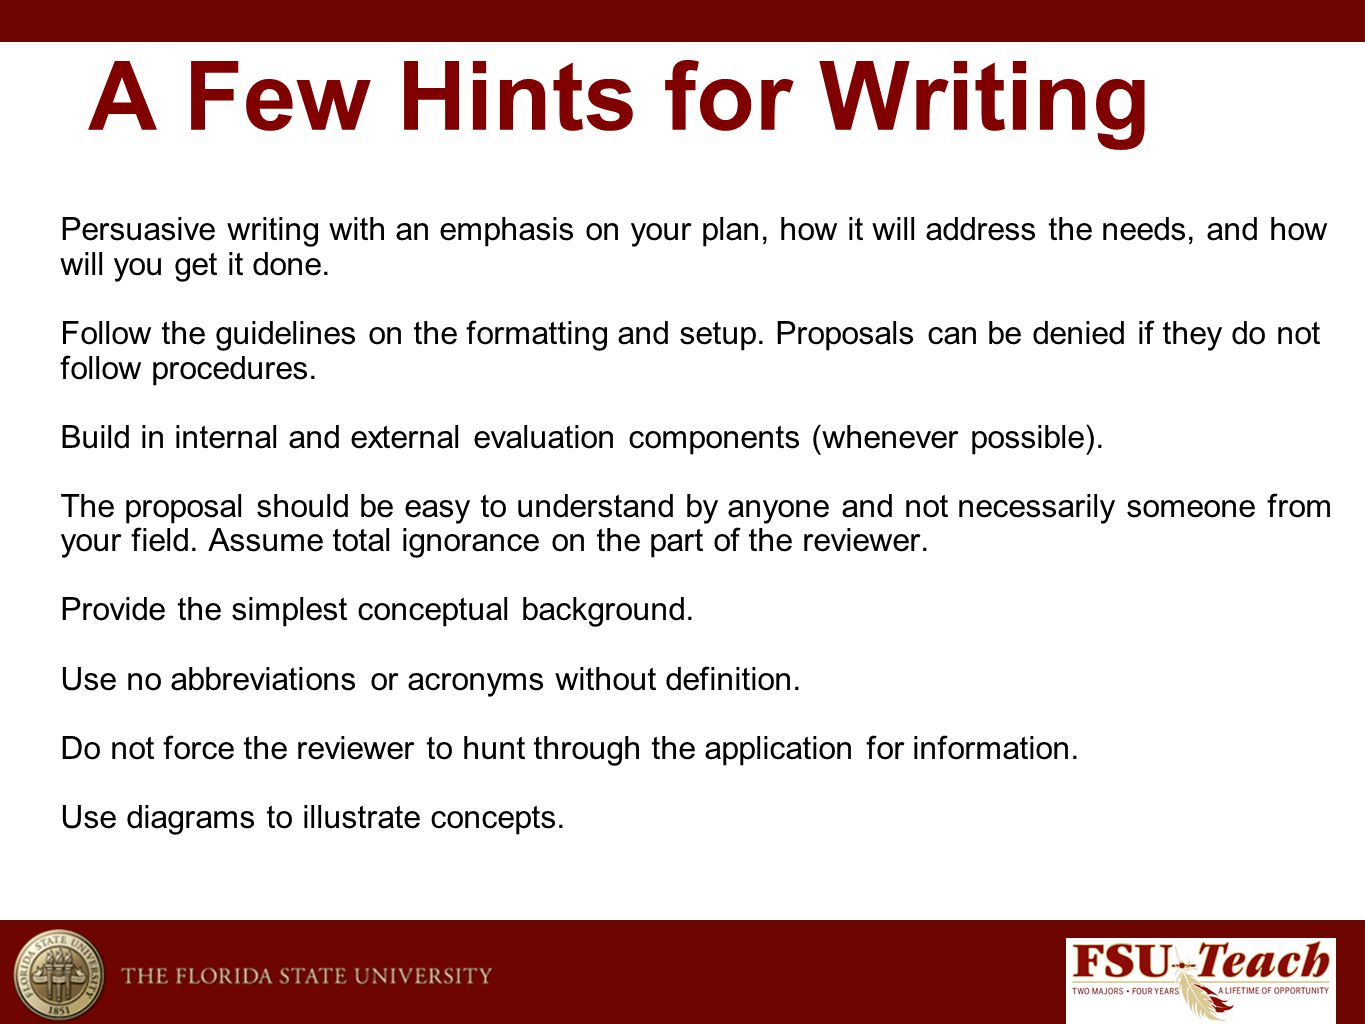 A Few Hints for Writing Persuasive writing with an emphasis on your plan, how it will address the needs, and how will you get it done.